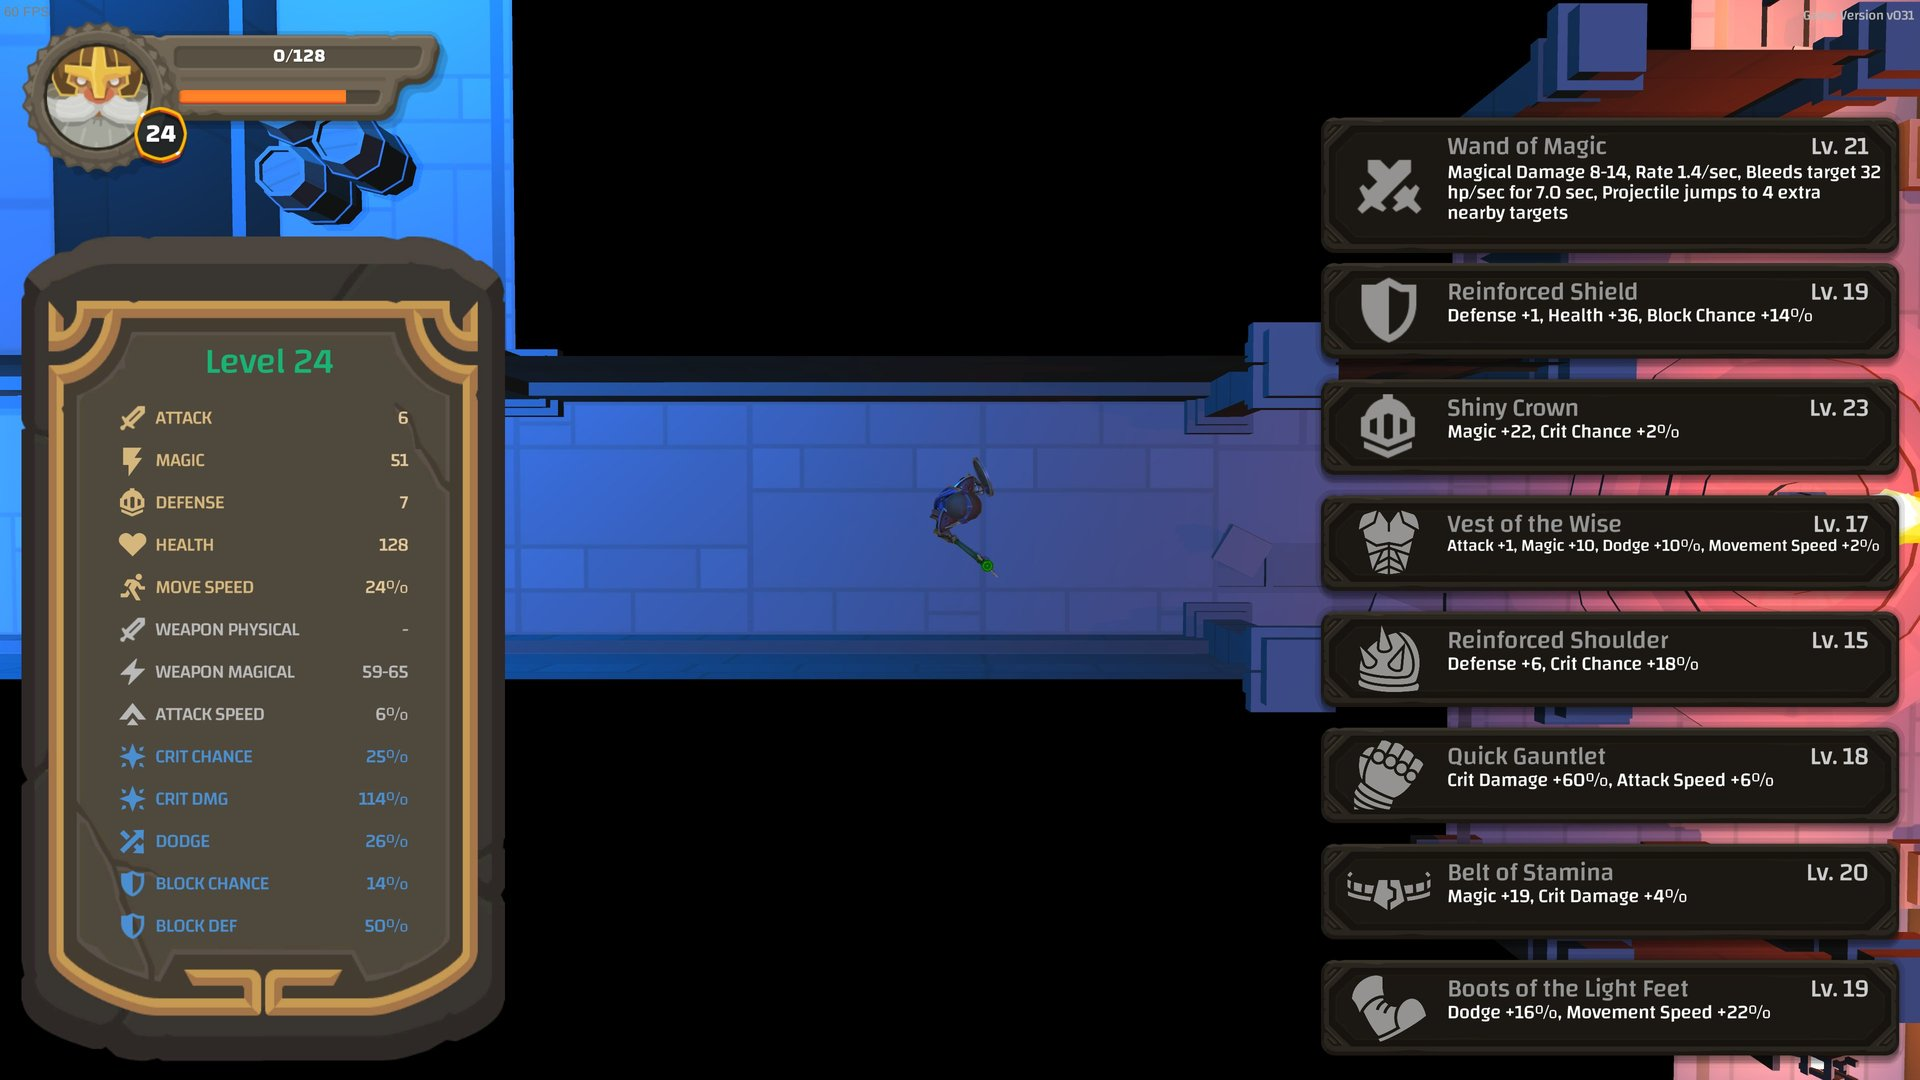 Screen from Ouroboros Dungeon showing inventory, including a Belt of Stamina which only boosts magic.